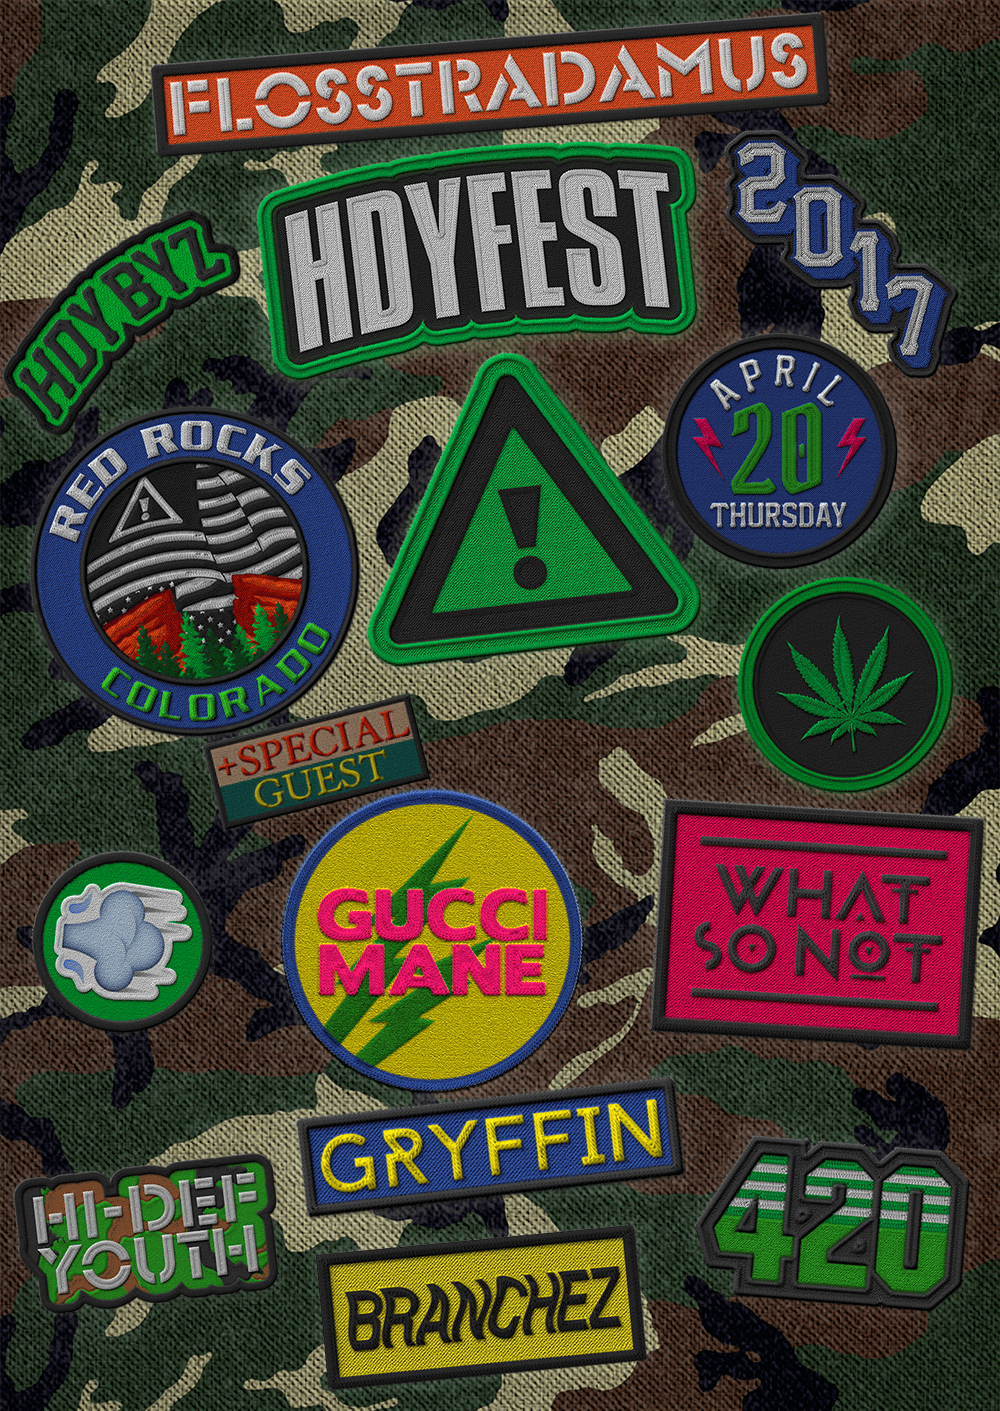 Gucci Mane added to Flosstradamus' HDYFEST 420